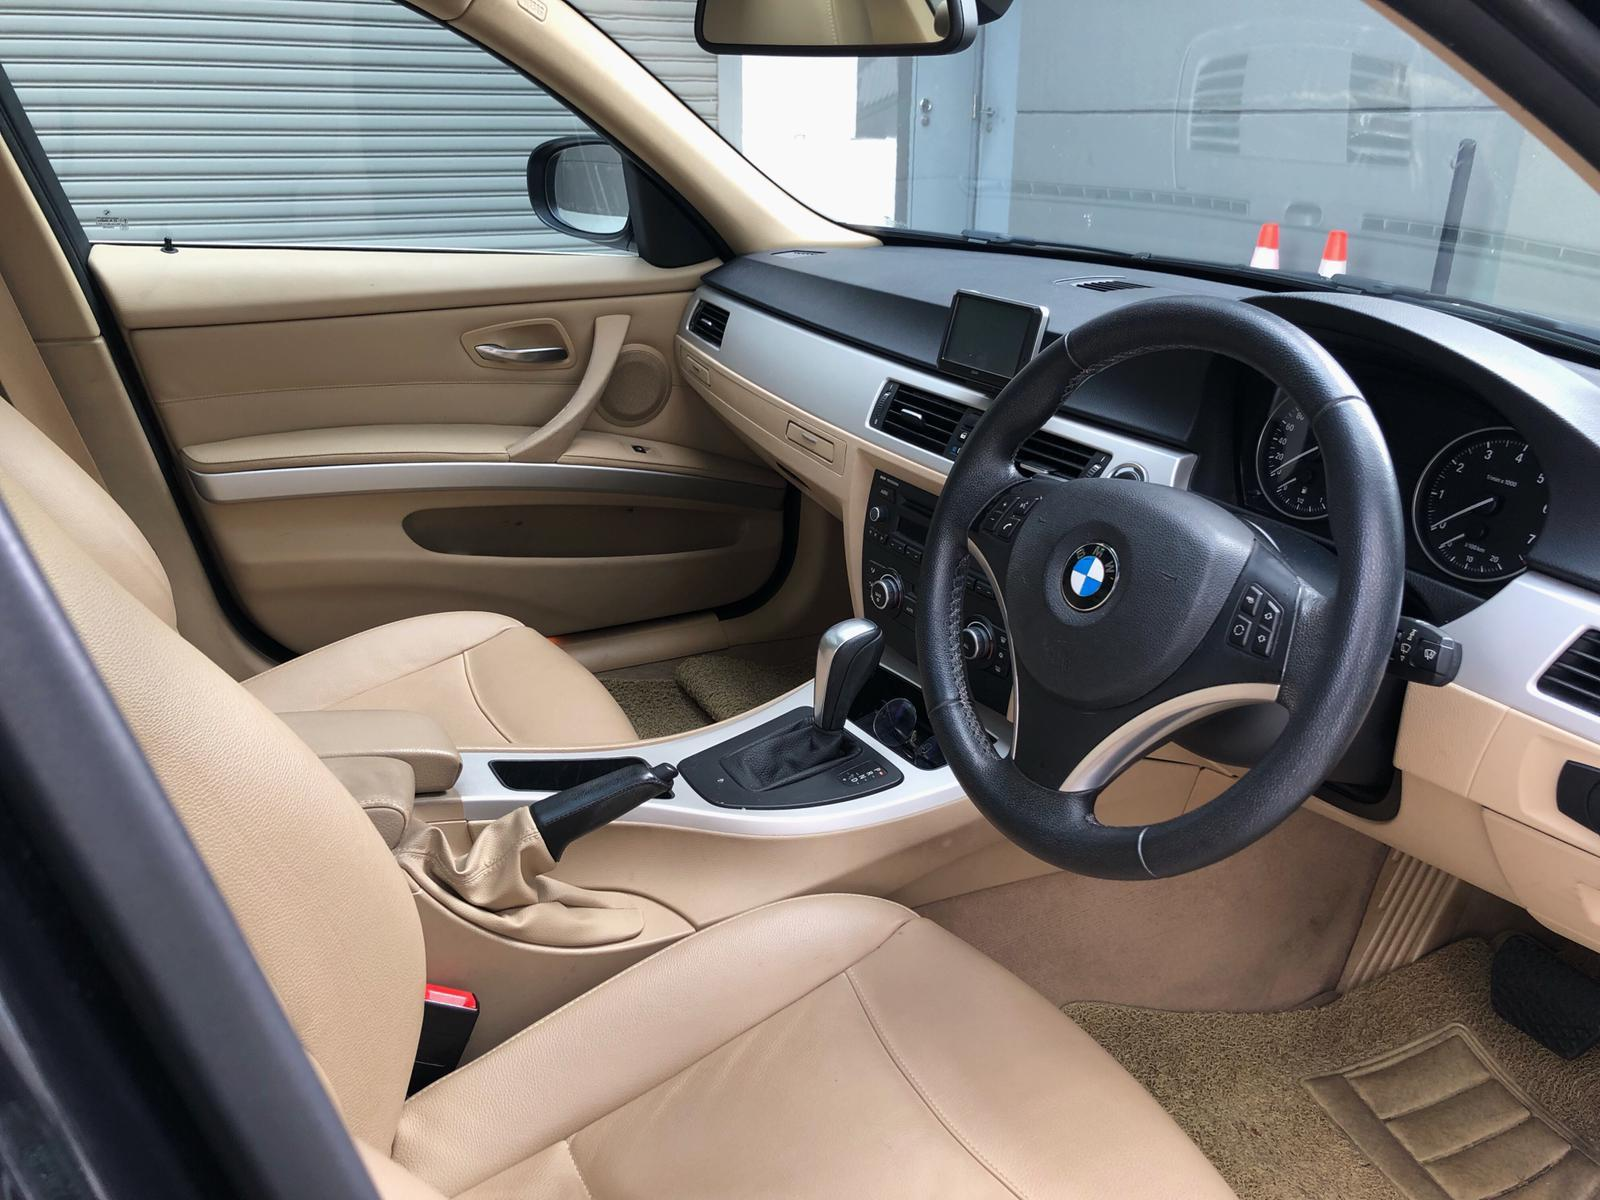 BMW 325i CONDI CAR top conditon Grab Rental Gojek Or Personal Use Low price and Cheap